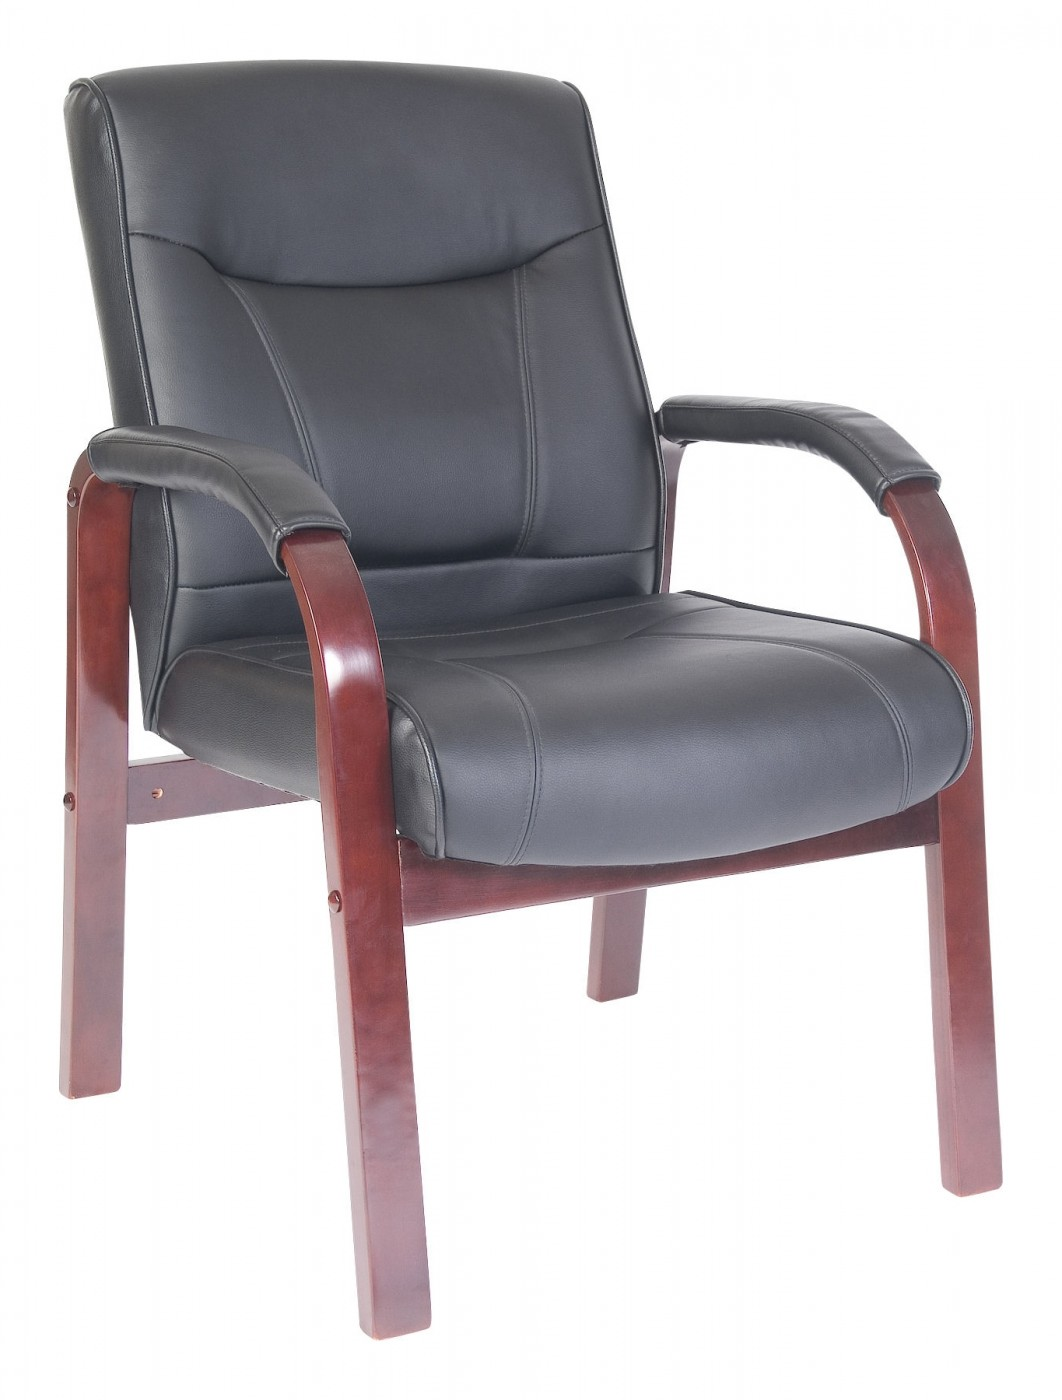 desk chairs without wheels uk green dining room visitors chair 8511md mdk 121 office furniture